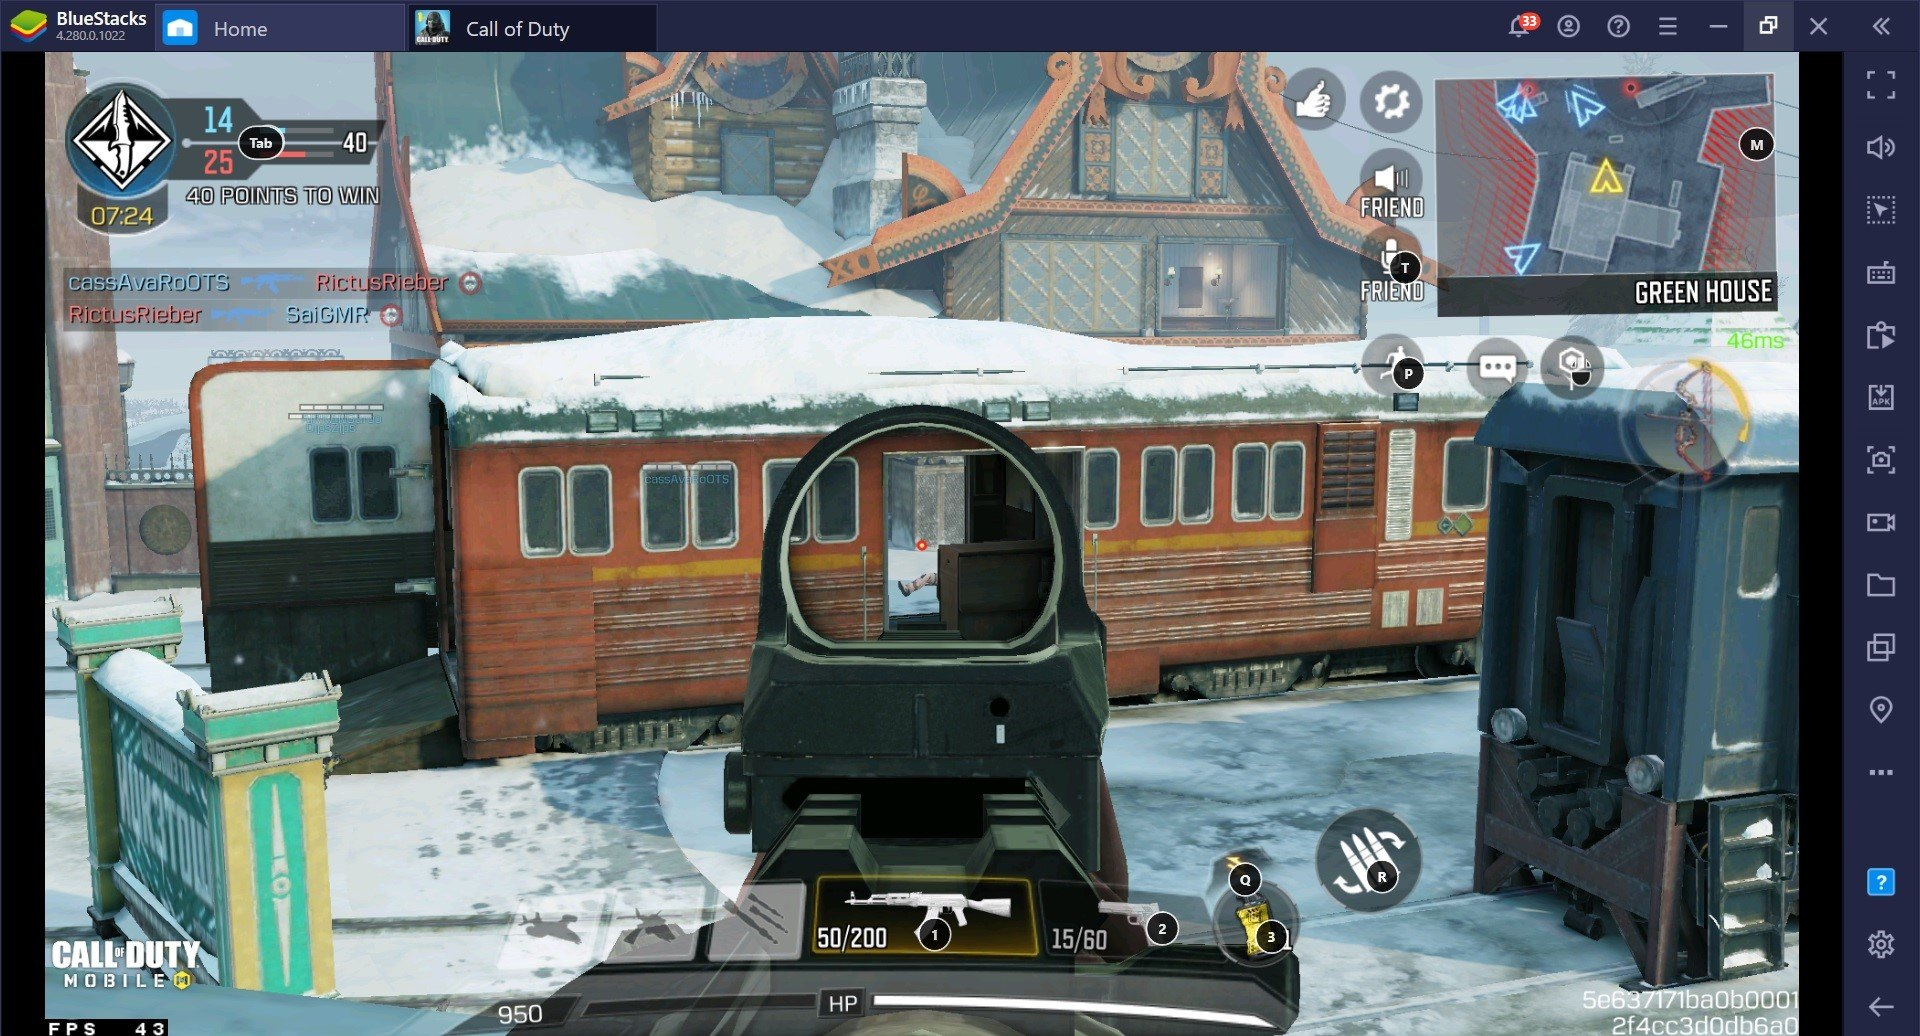 A Call of Duty: Mobile Guide to Help You Stop Making Mistakes Now